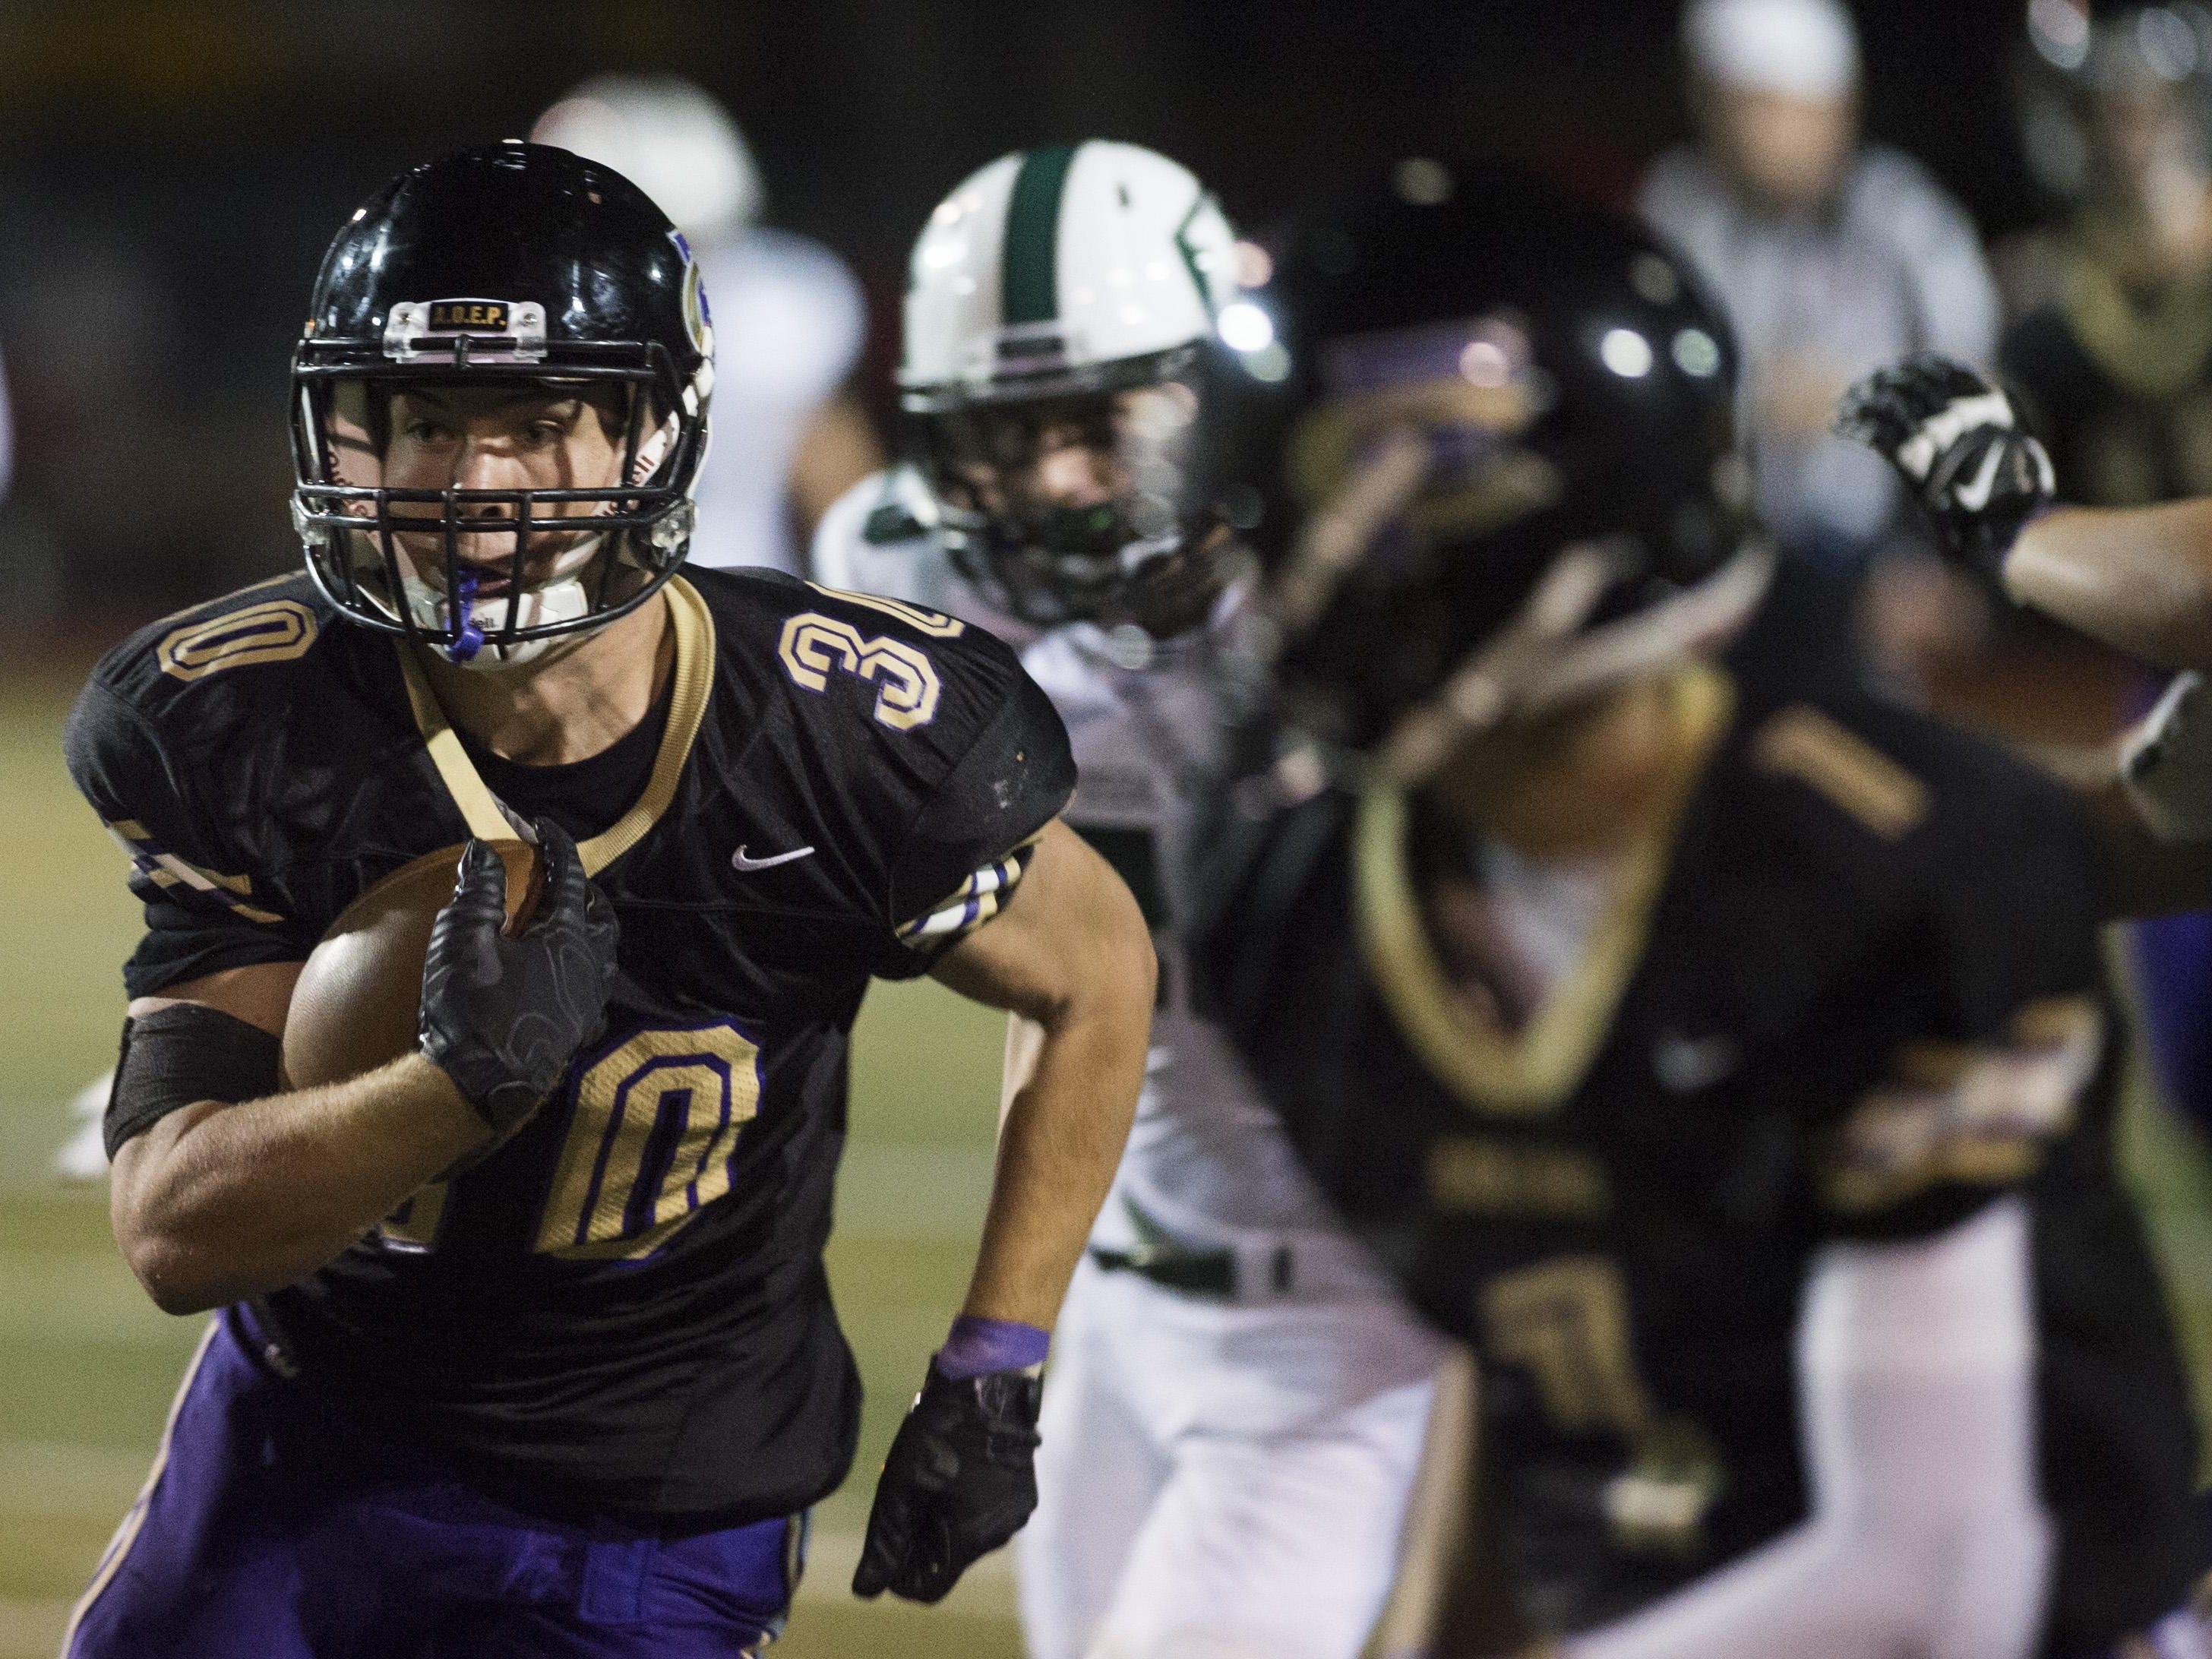 Fort Collins High School running back Sam Bostak averaged 4.7 yards per carry last week. The Lambkins play at Windsor at 7 p.m. Friday.